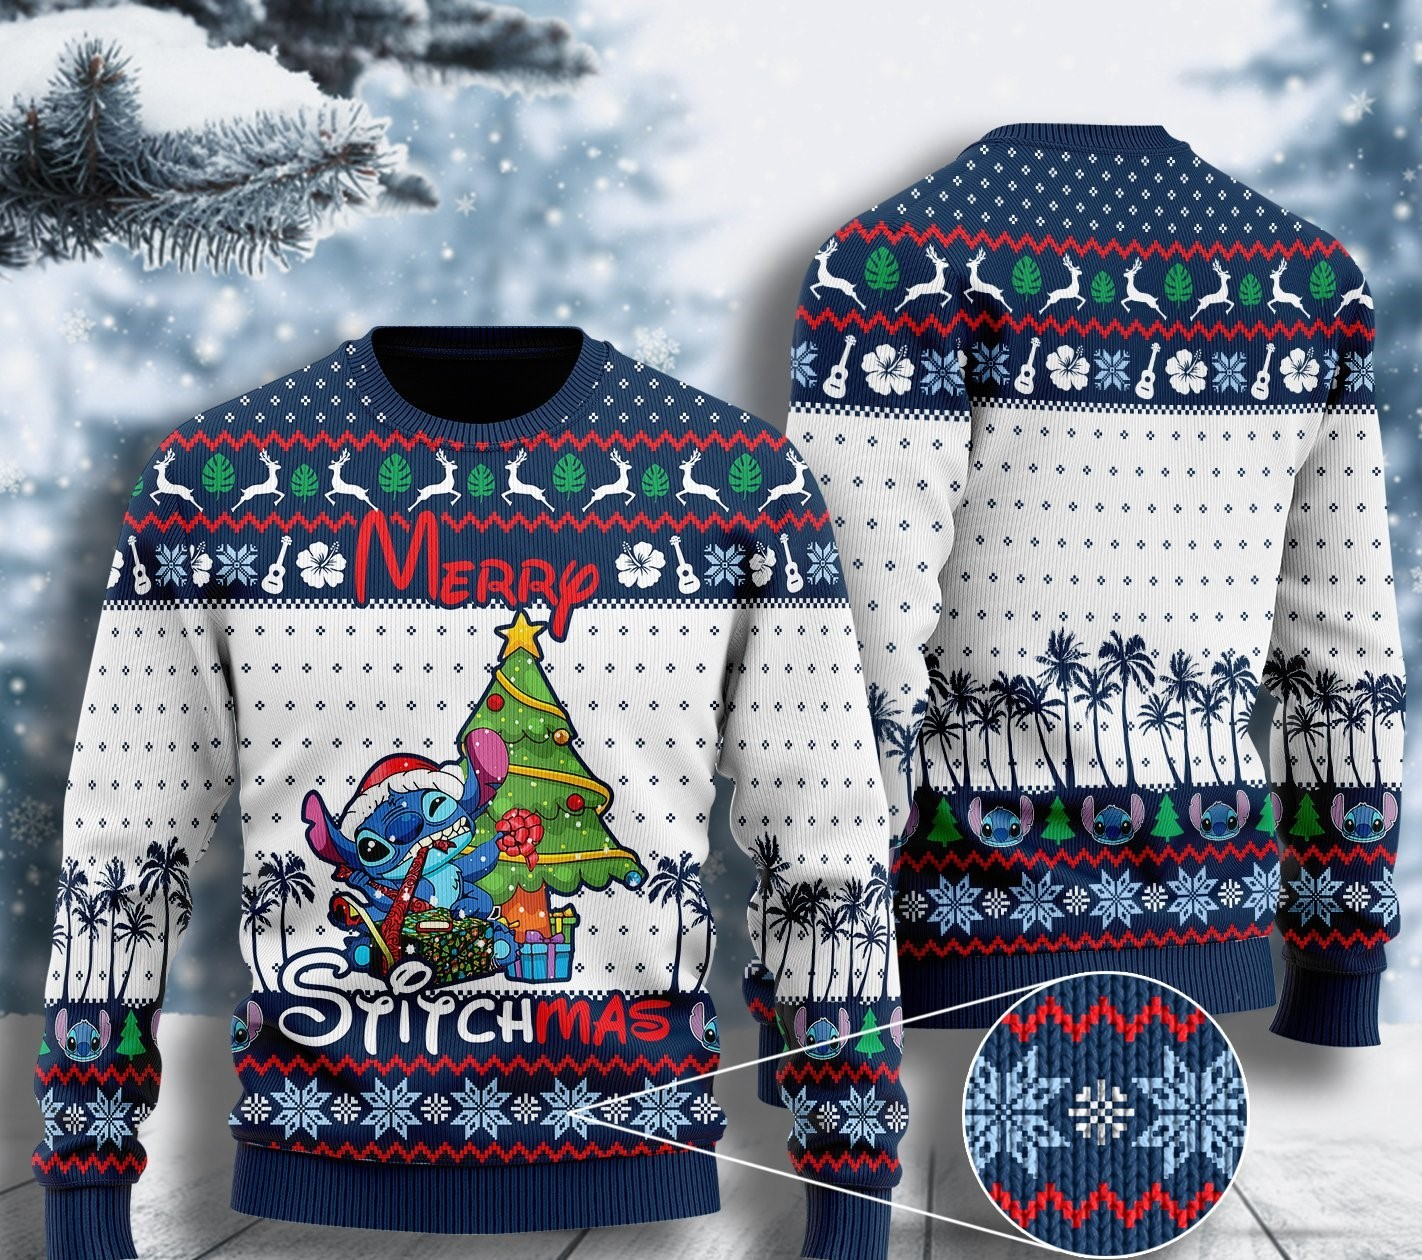 stitch lover merry Stitchmas ugly christmas sweater 2